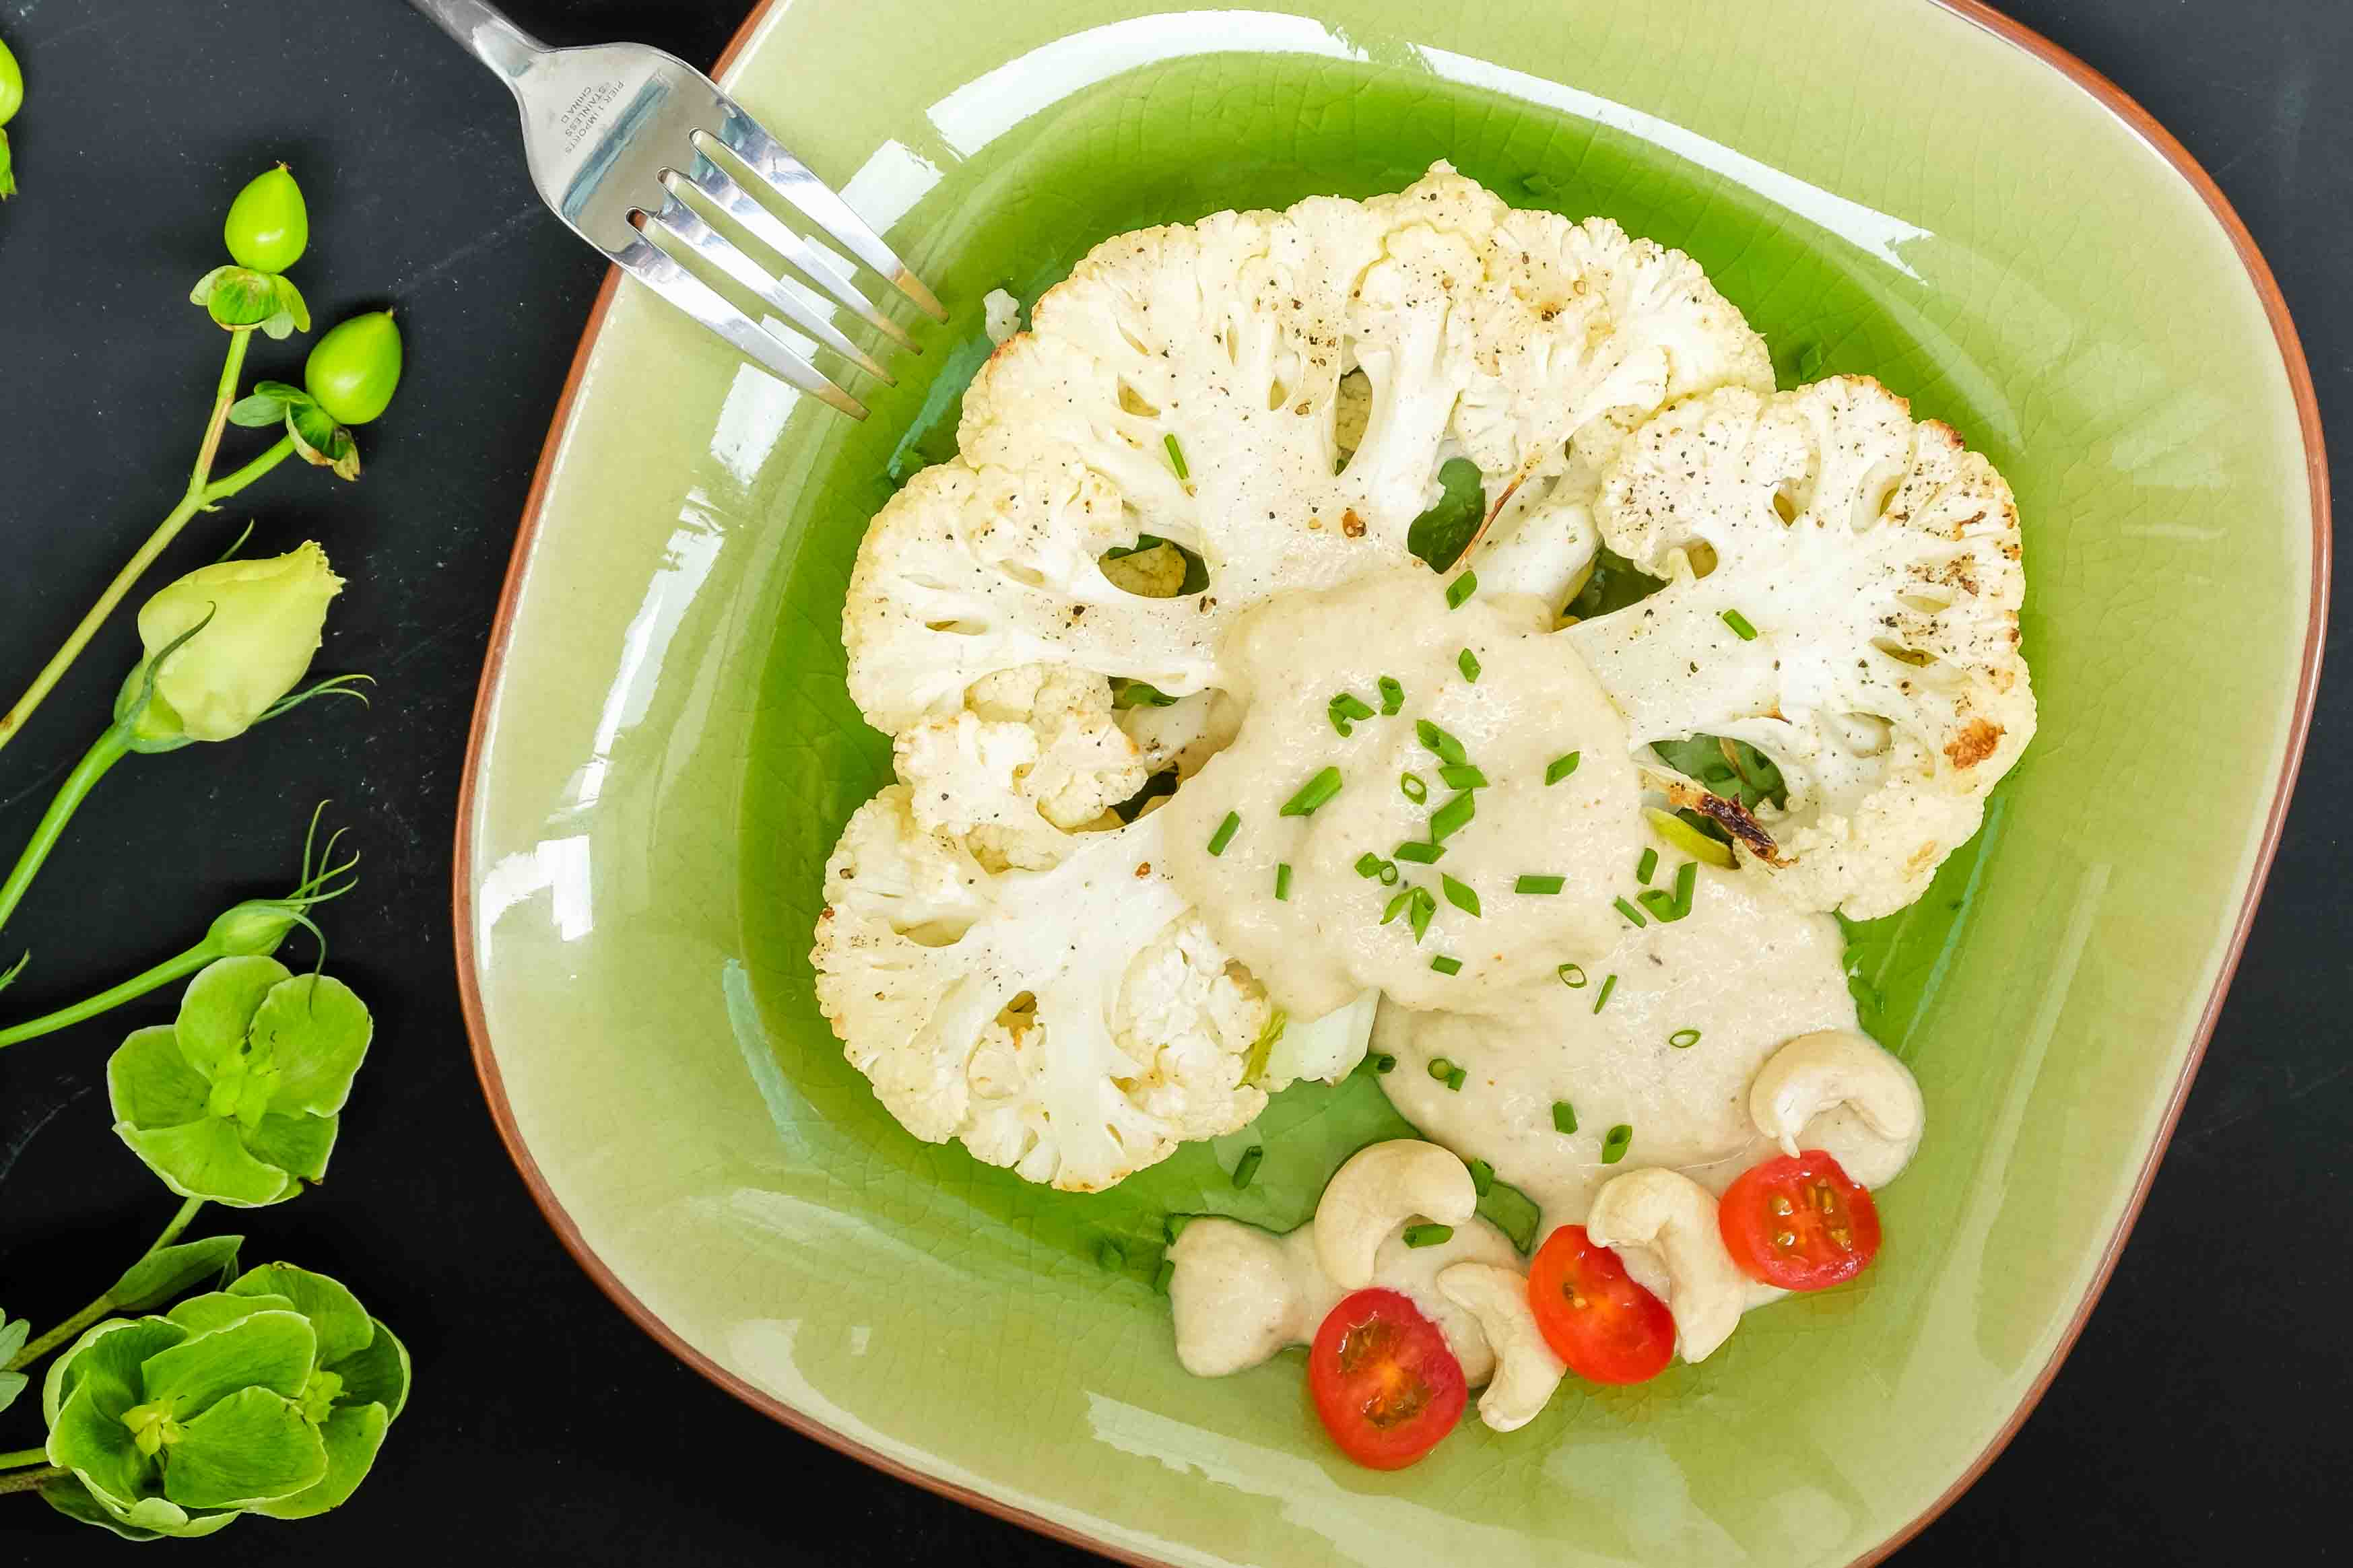 Vegan Cauliflower Steak with Cashew Sauce